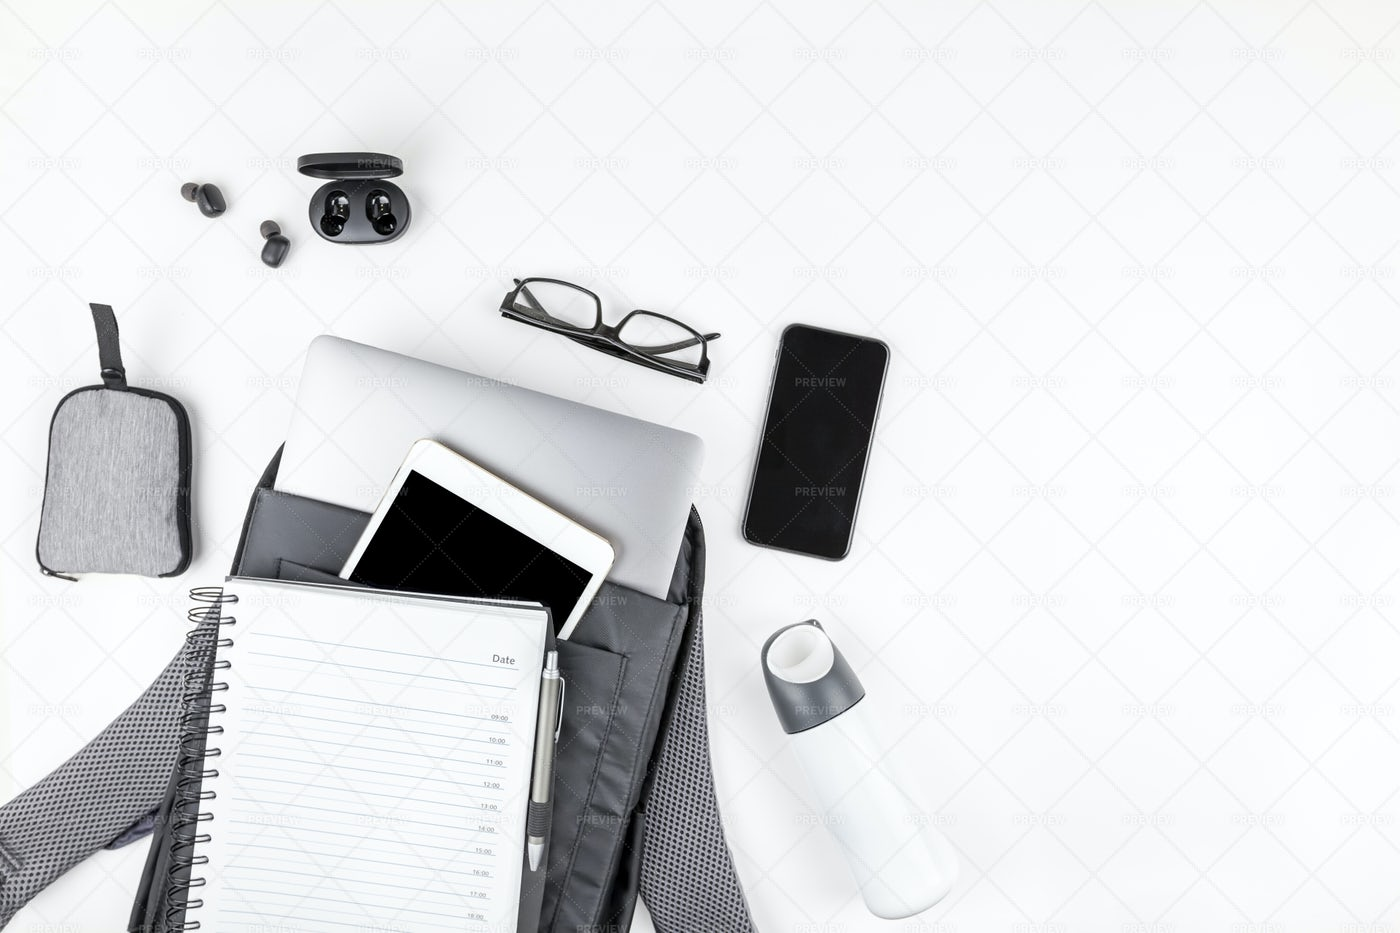 Modern Backpack With Laptop And Gadgets: Stock Photos